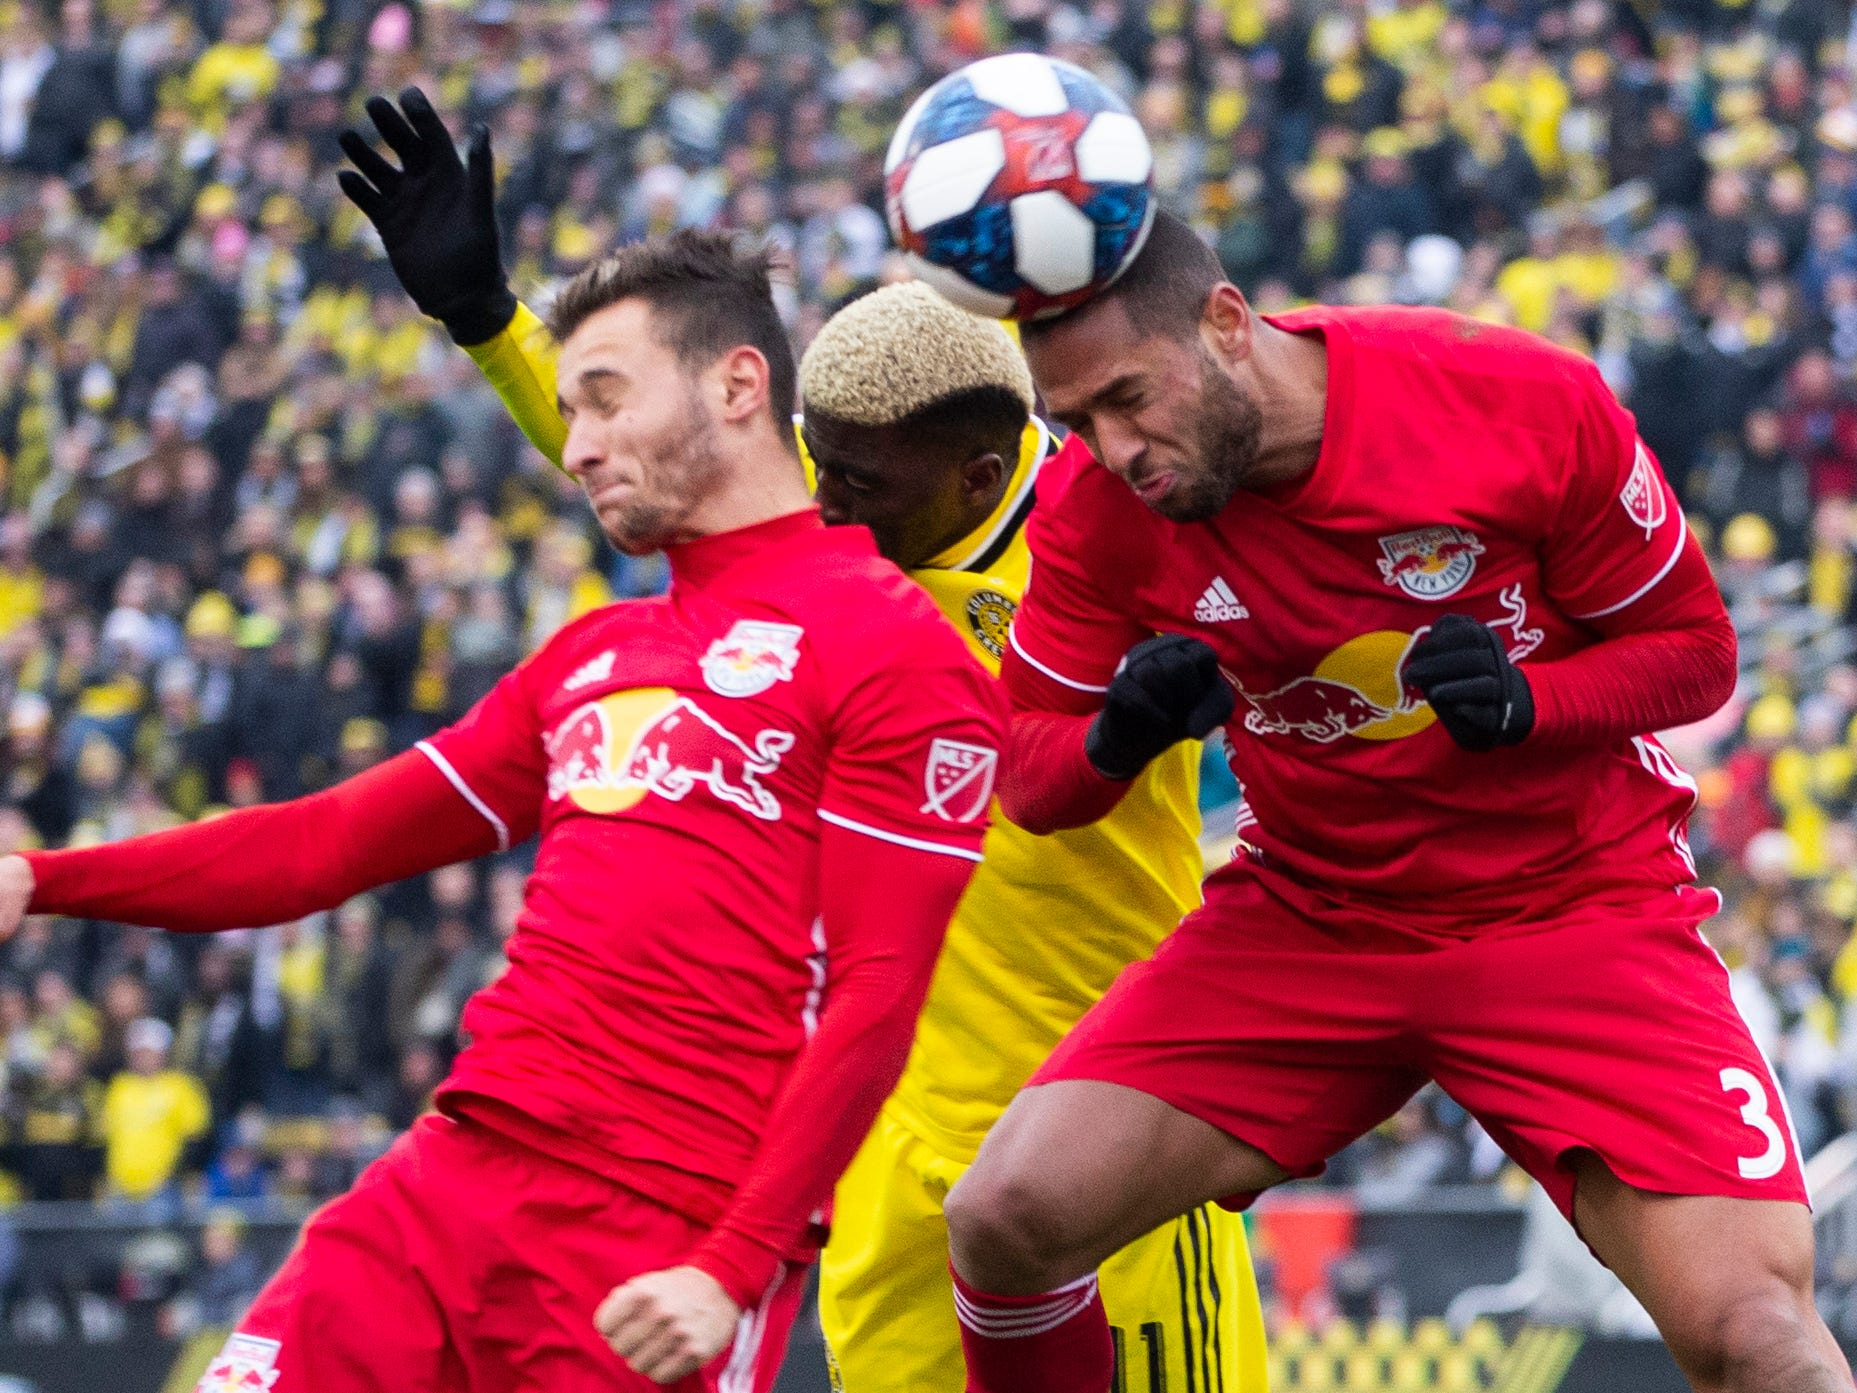 New York Red Bulls defender Amro Tarek (3) plays the ball ahead of teammate Andreas Ivan and Columbus Crew SC forward Gyasi Zardes (11) at MAPFRE Stadium. The Crew and Red Bulls played to a 1-1 tie.